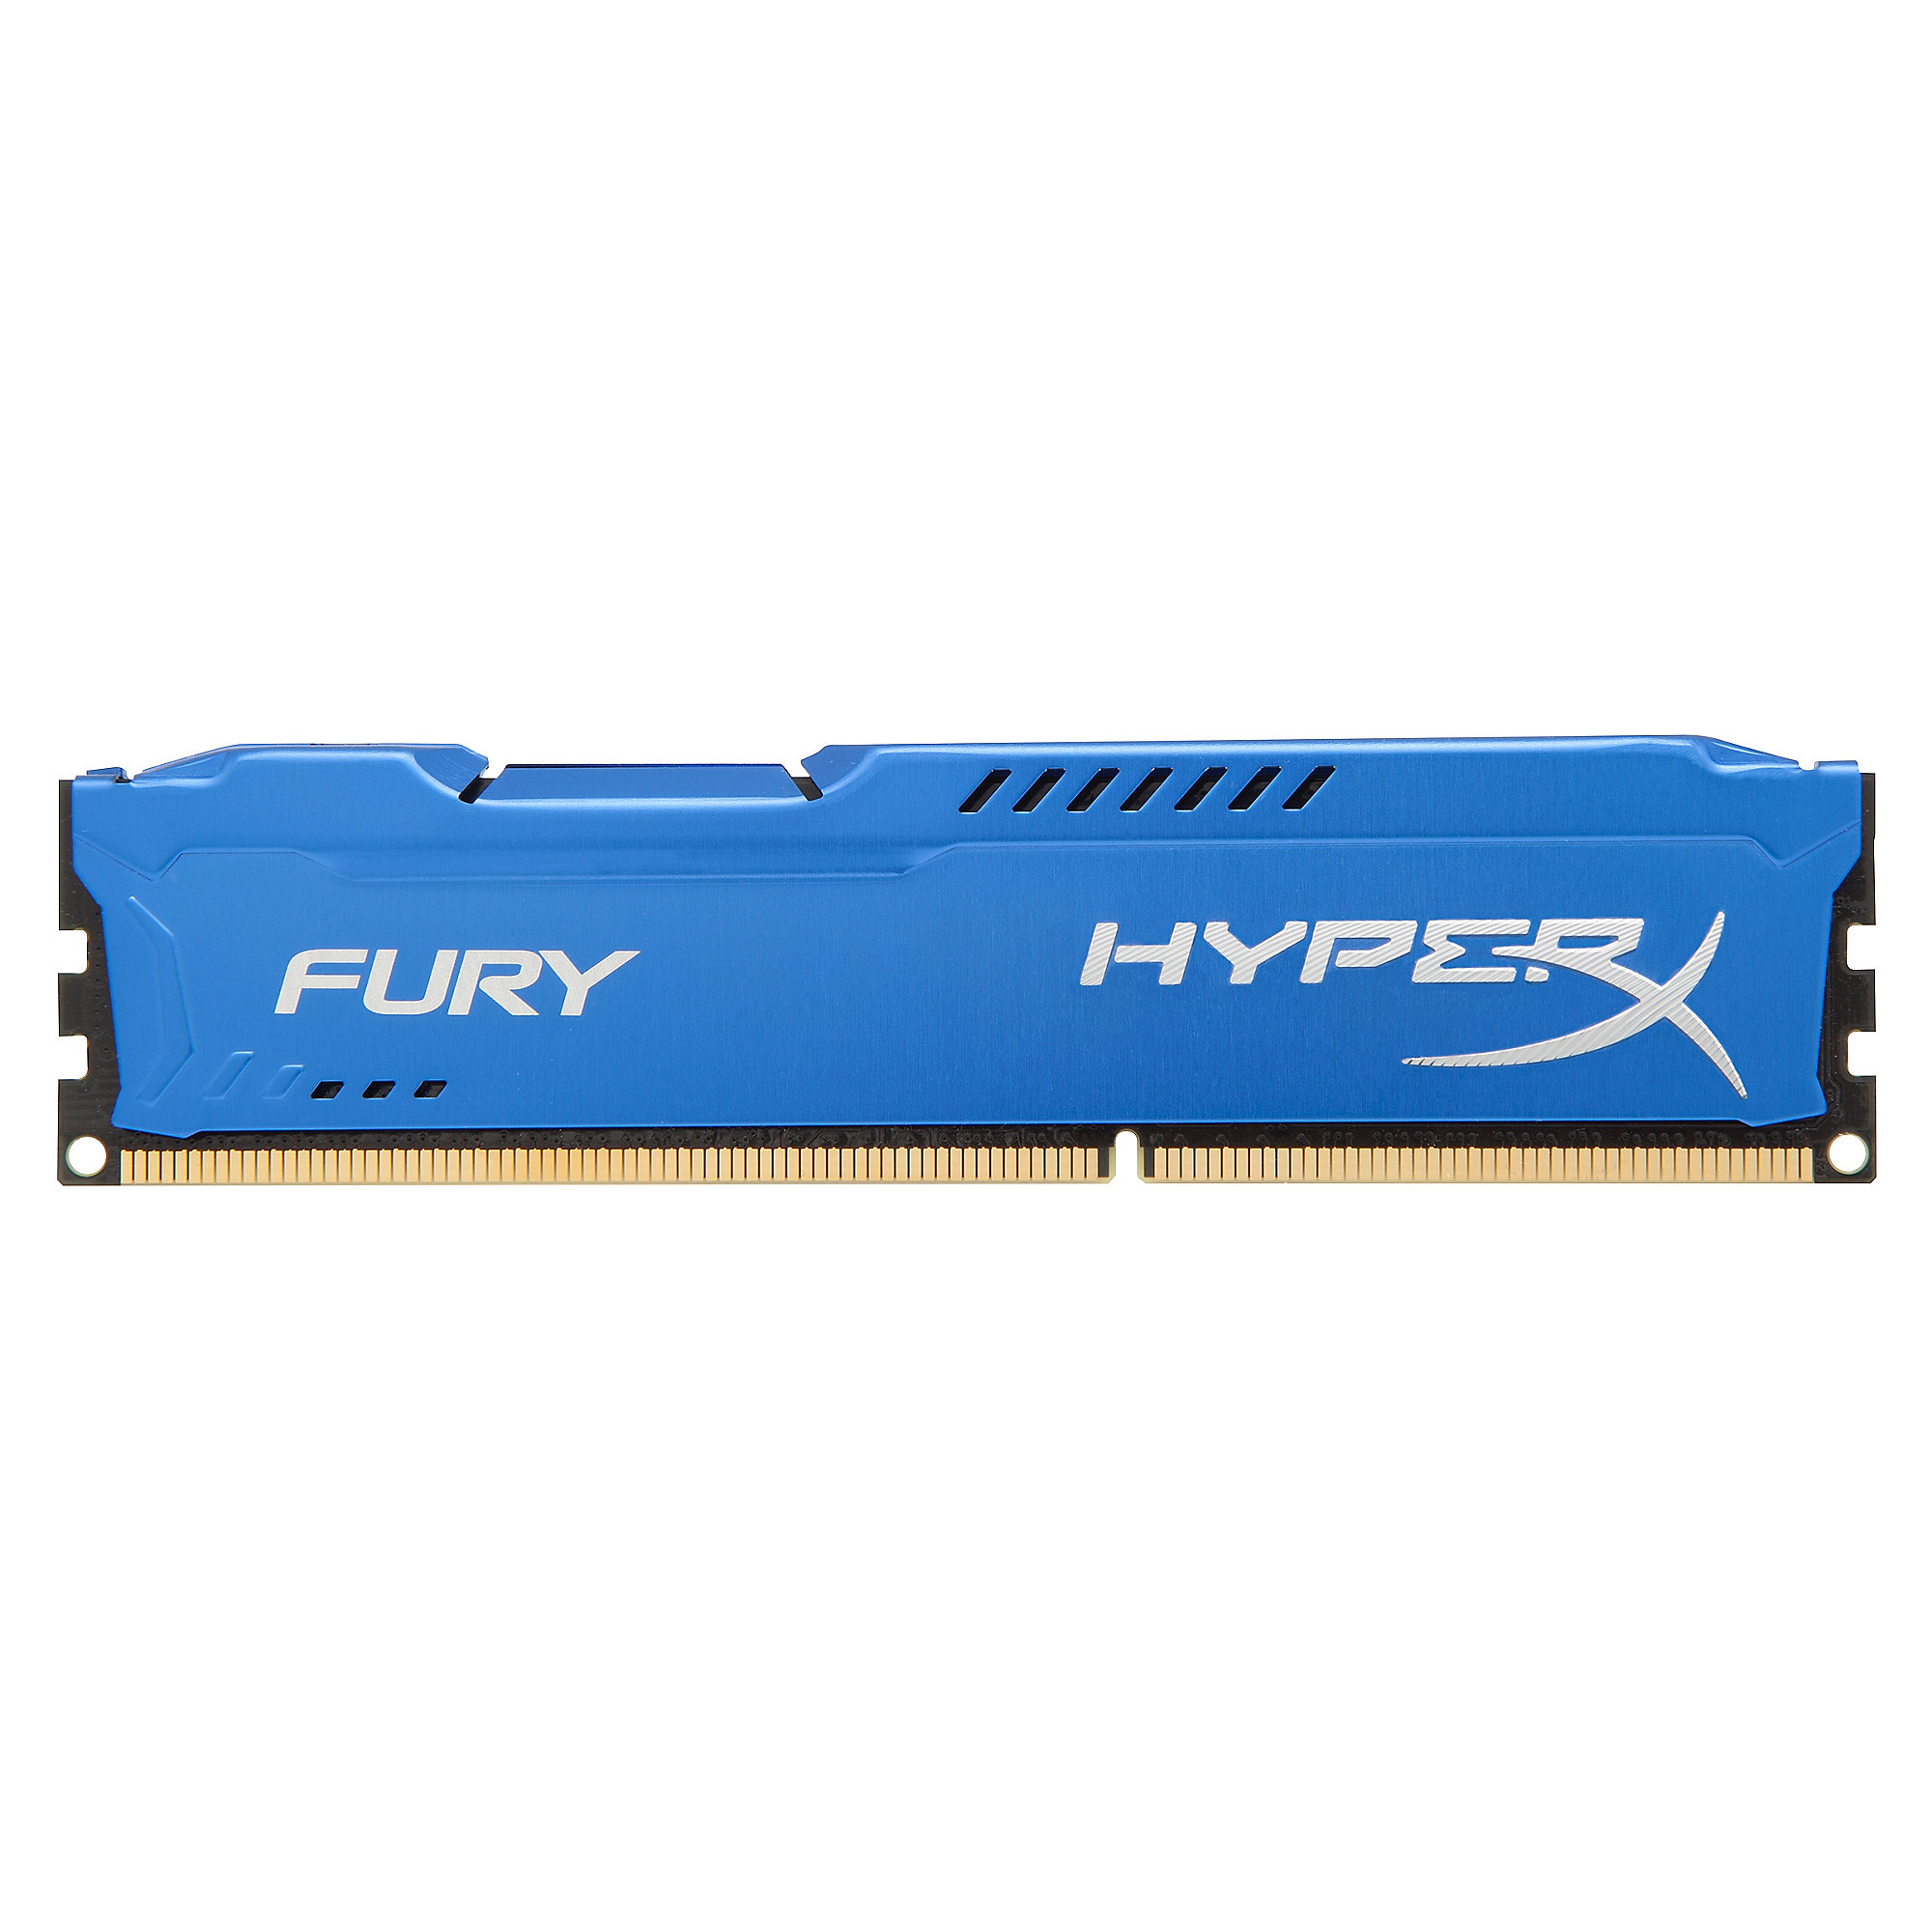 16GB (2x 8GB) Kingston HyperX Fury blau DDR3-1333 CL9 RAM Kit